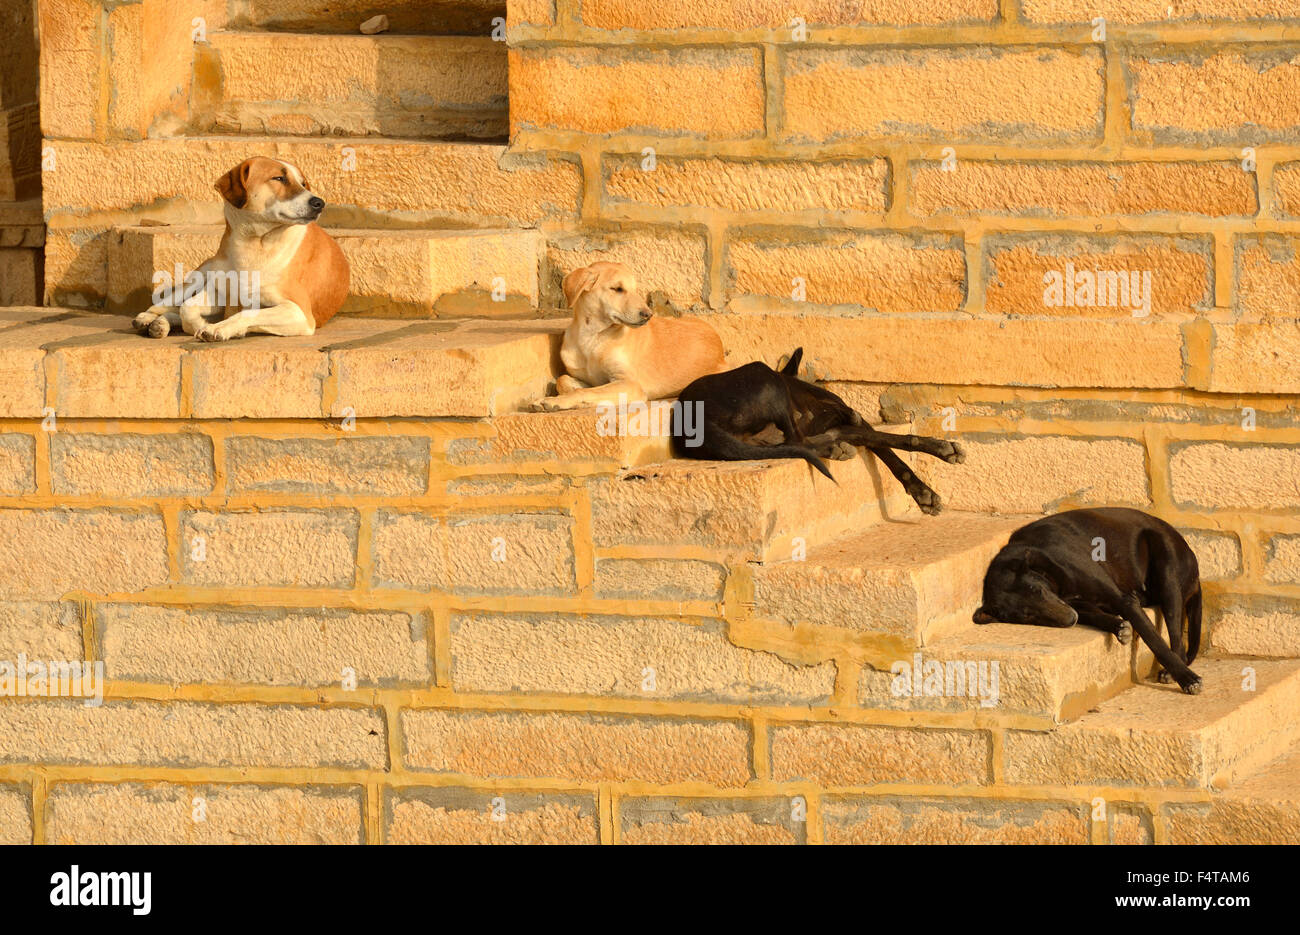 Asia, India, Rajasthan, Jaisalmer, dogs sleeping on stair - Stock Image